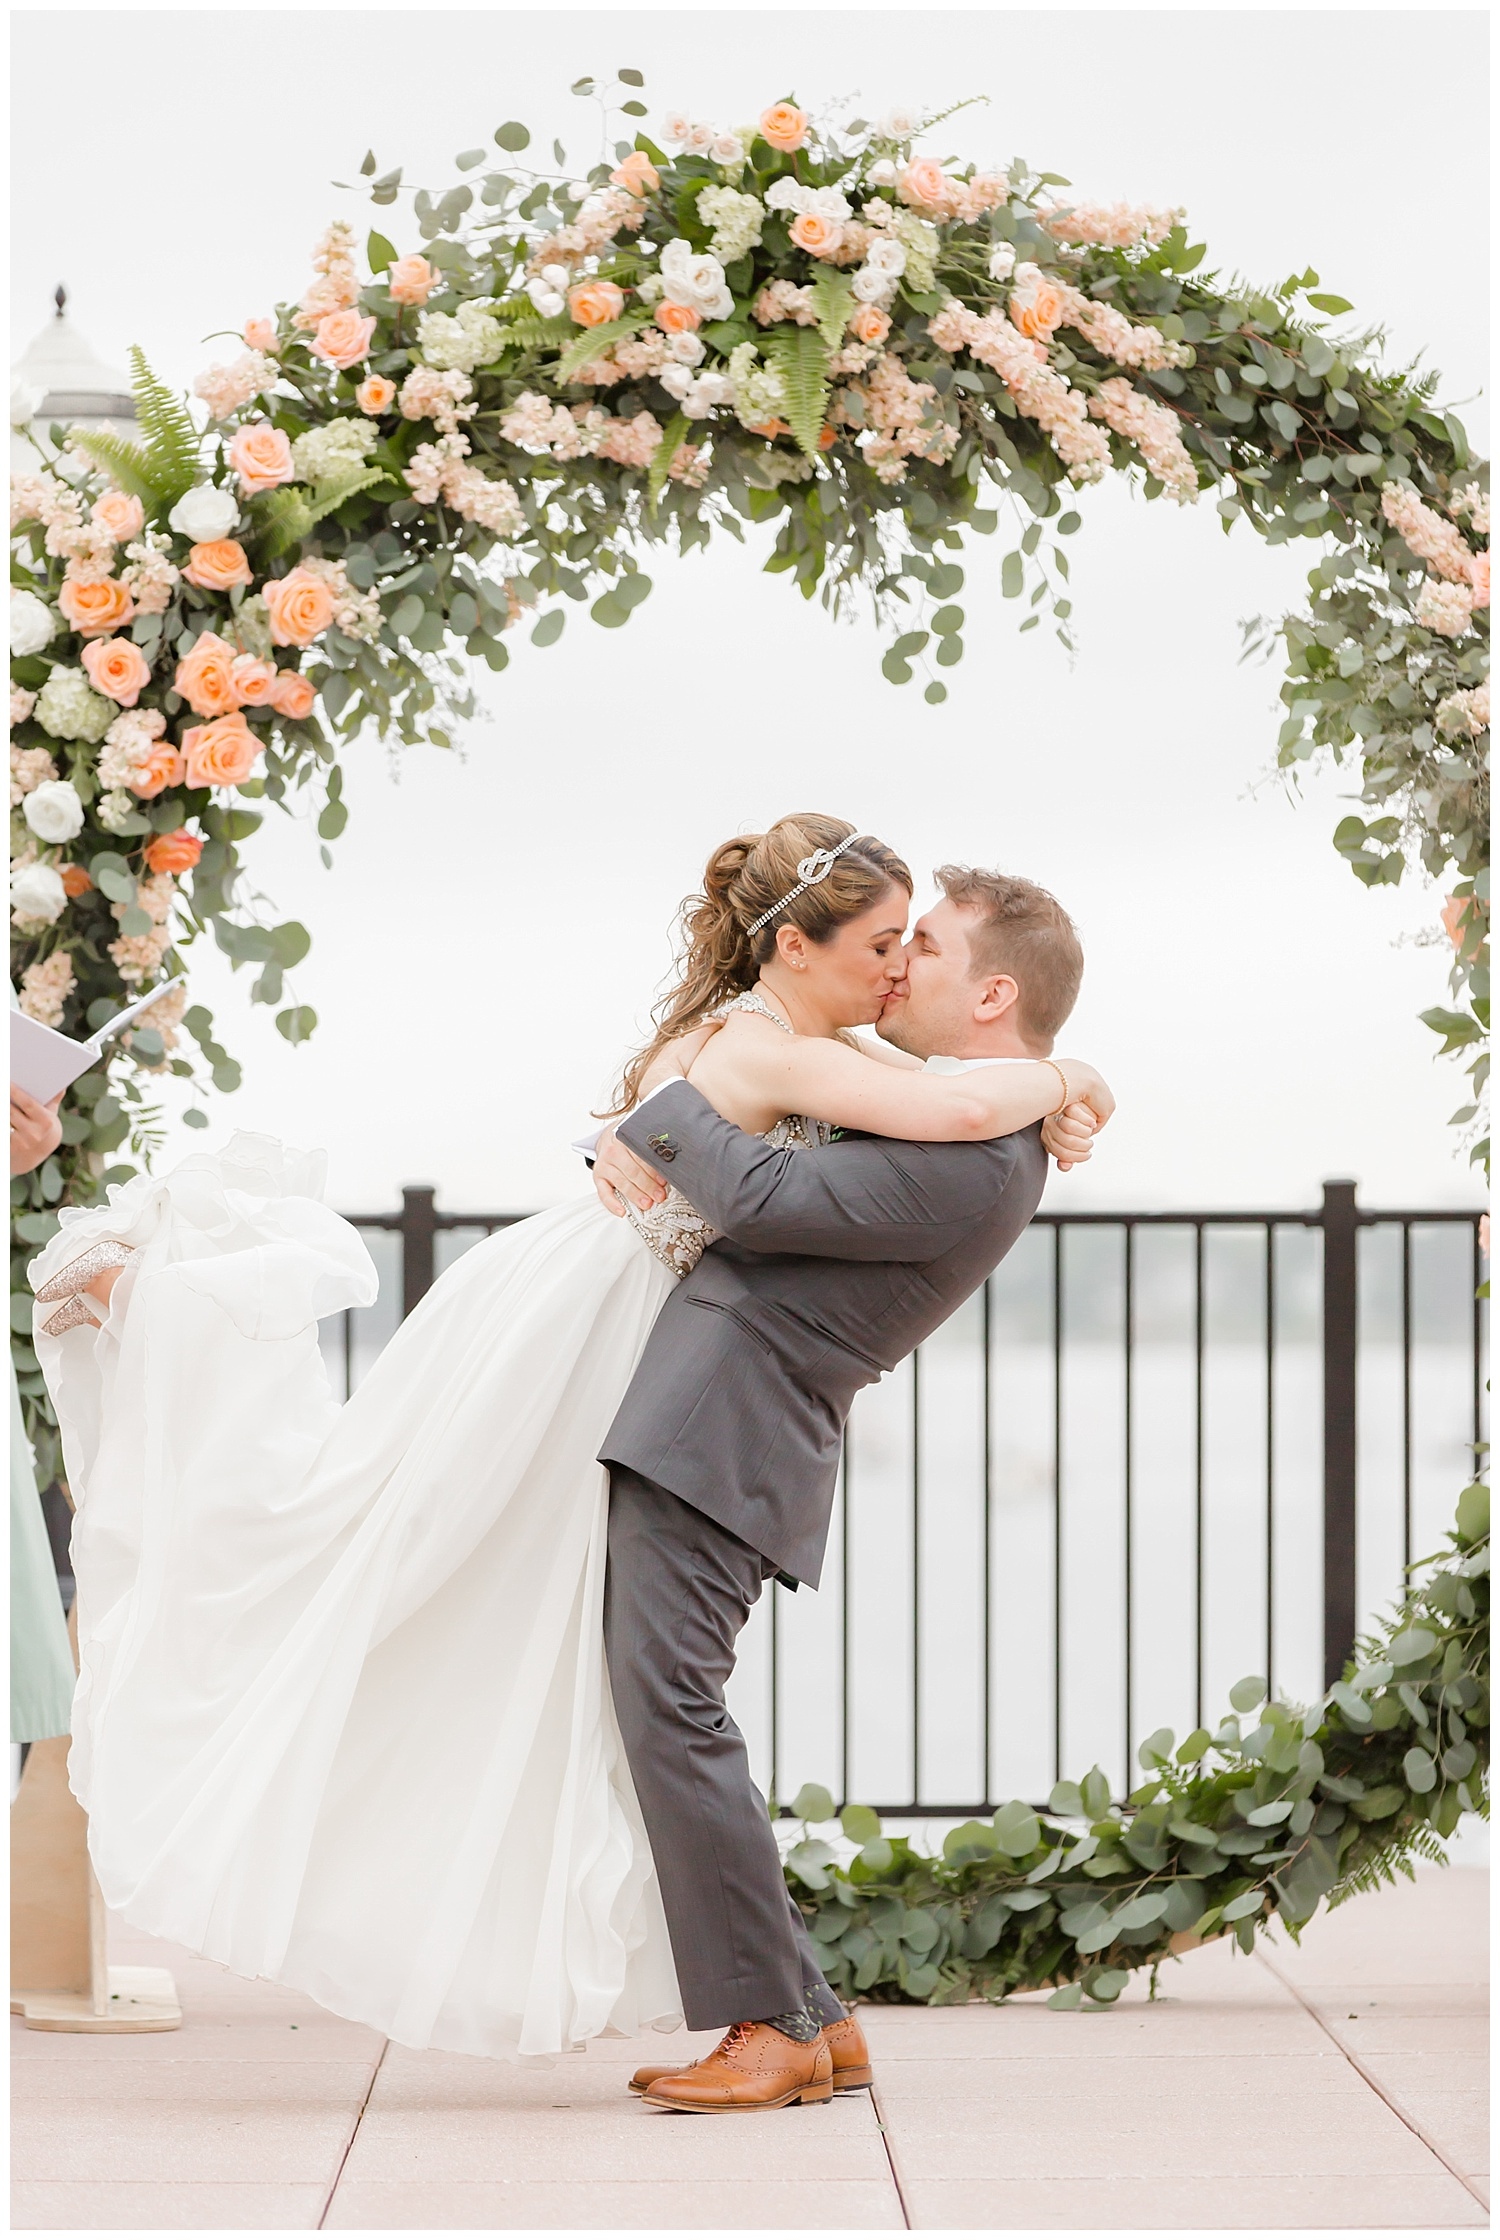 New Jersey Summer Wedding | The Molly Pitcher Inn, Red Bank NJ | www.redoakweddings.com